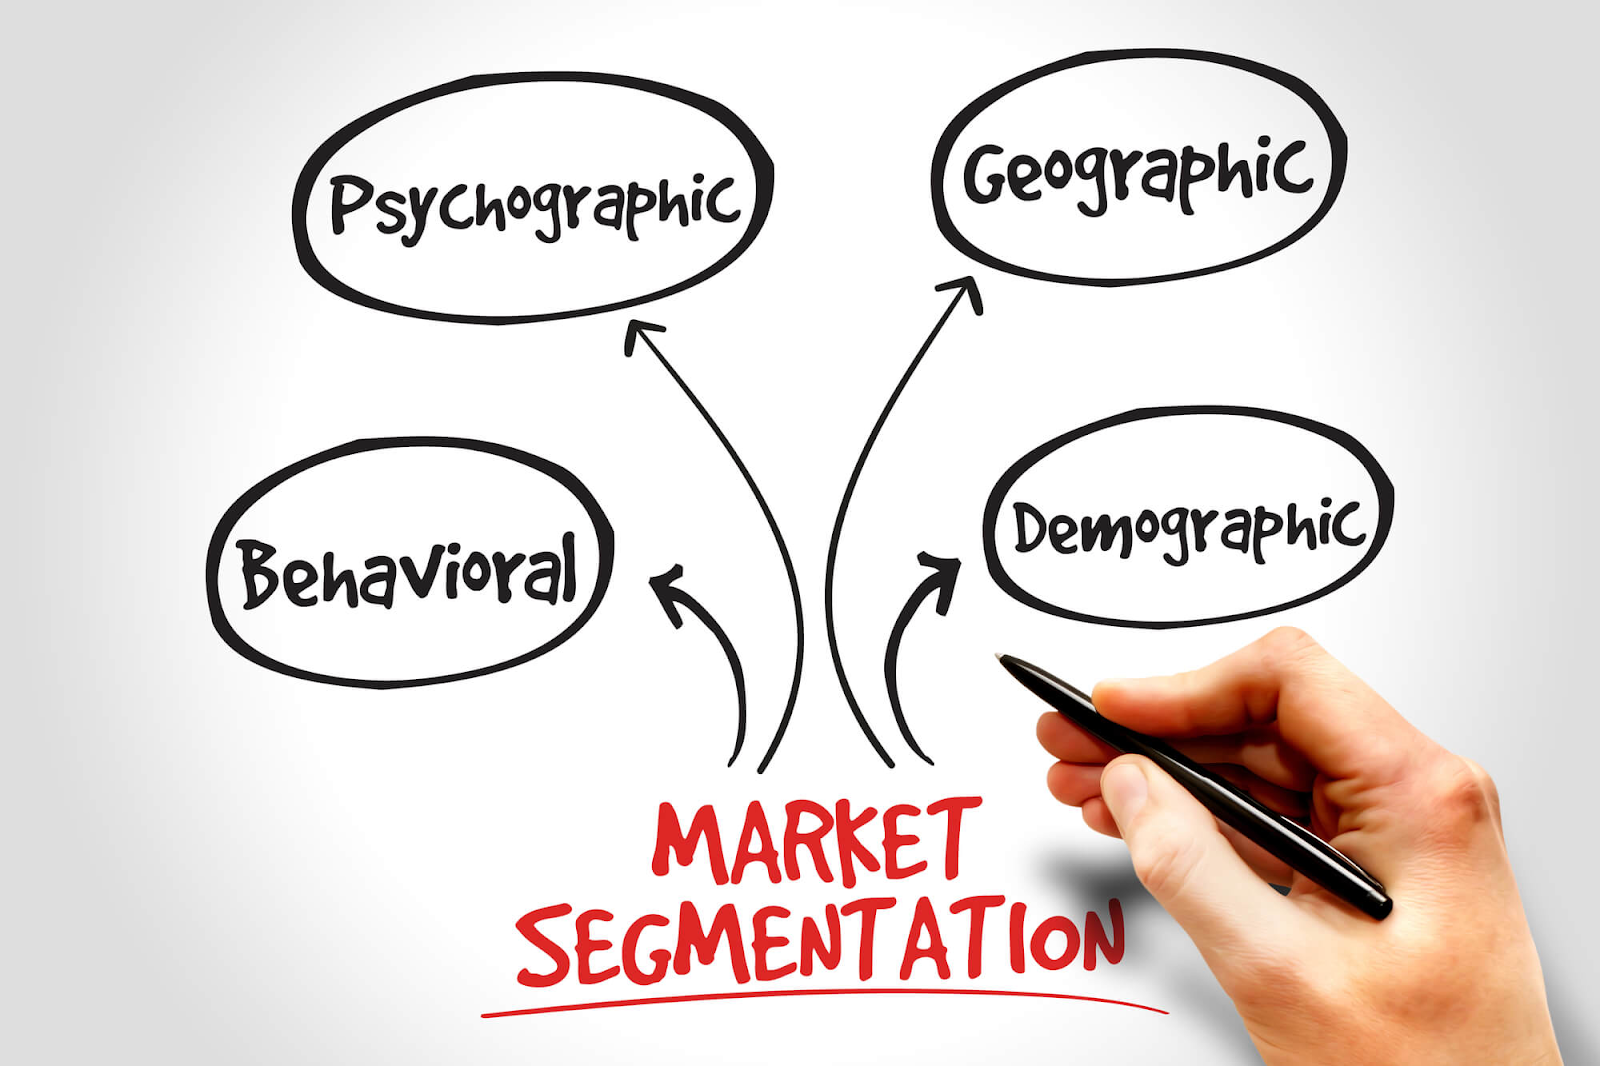 Market segmentation and analysis